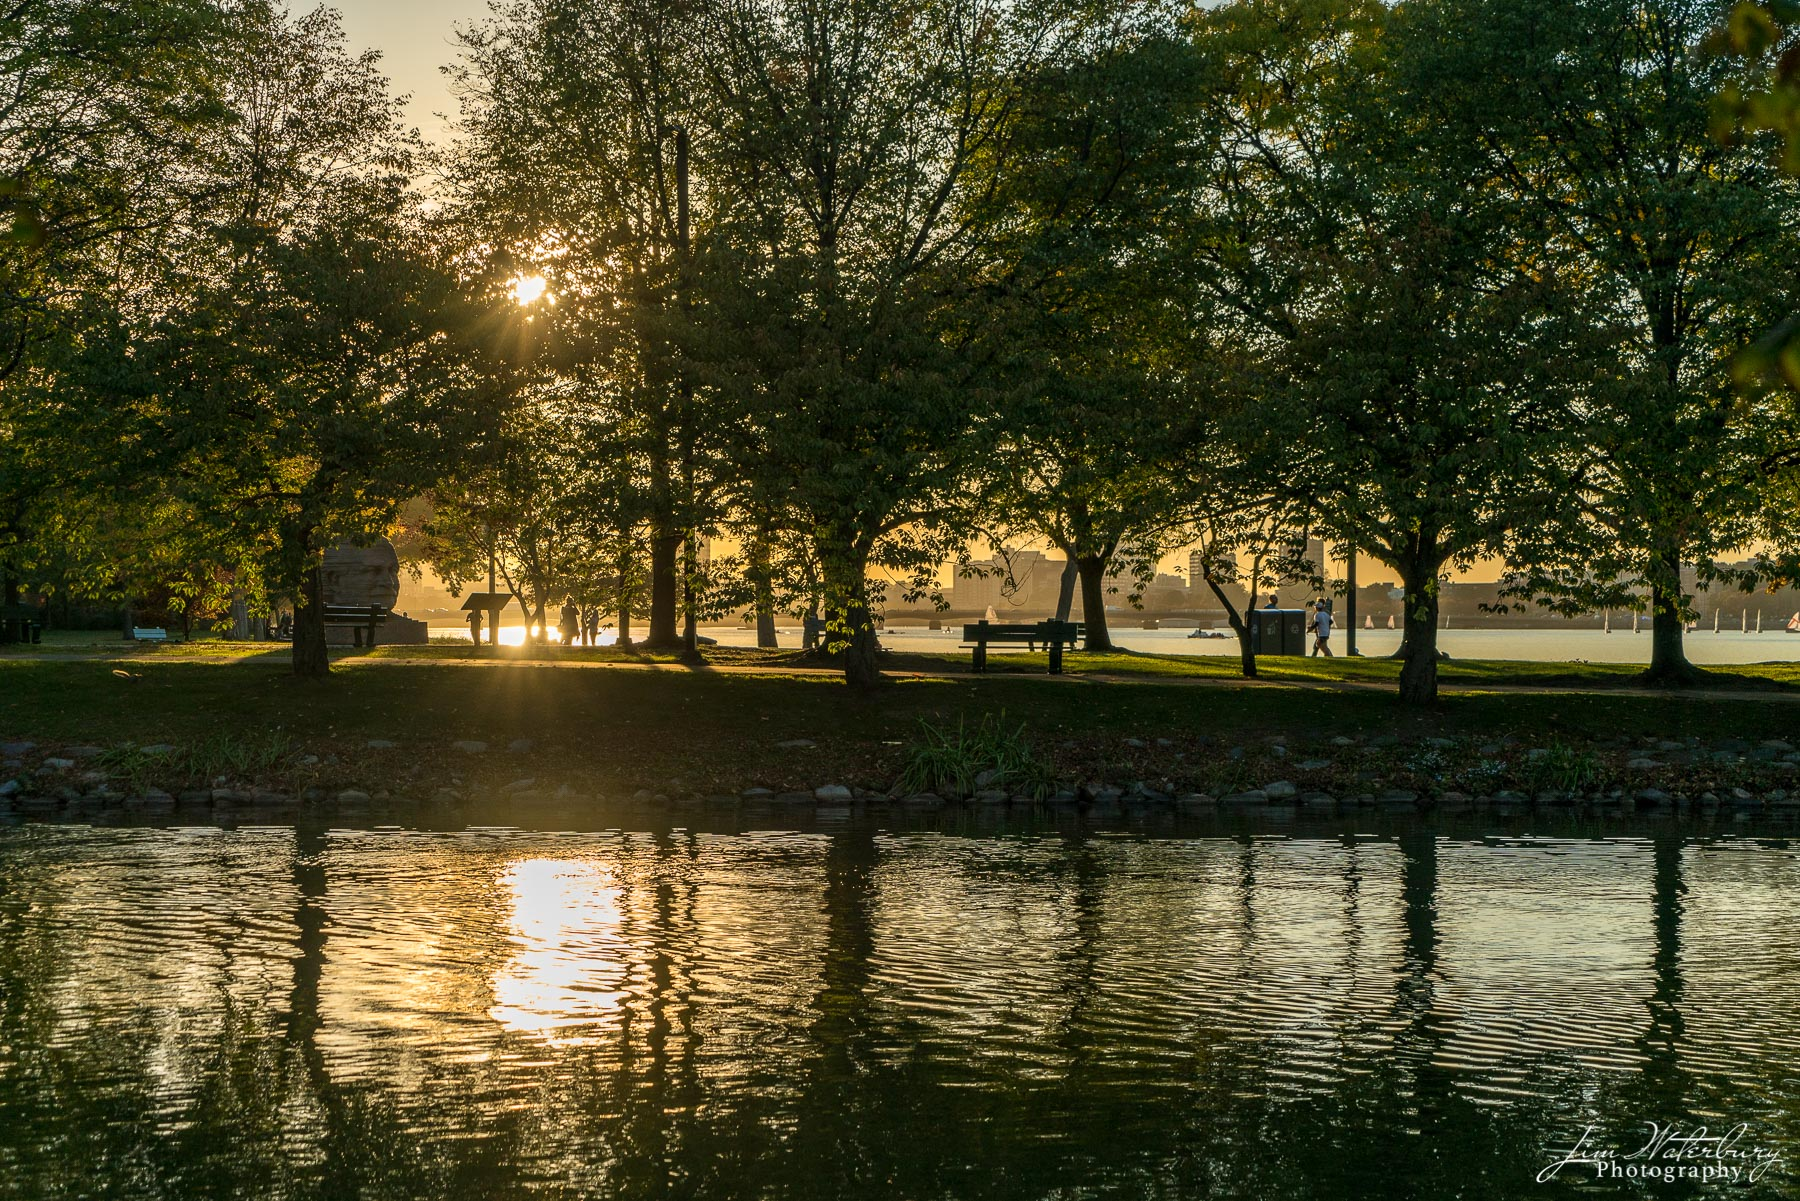 The late afternoon sun shines its warm light across the waters of the Charles River in Boston.